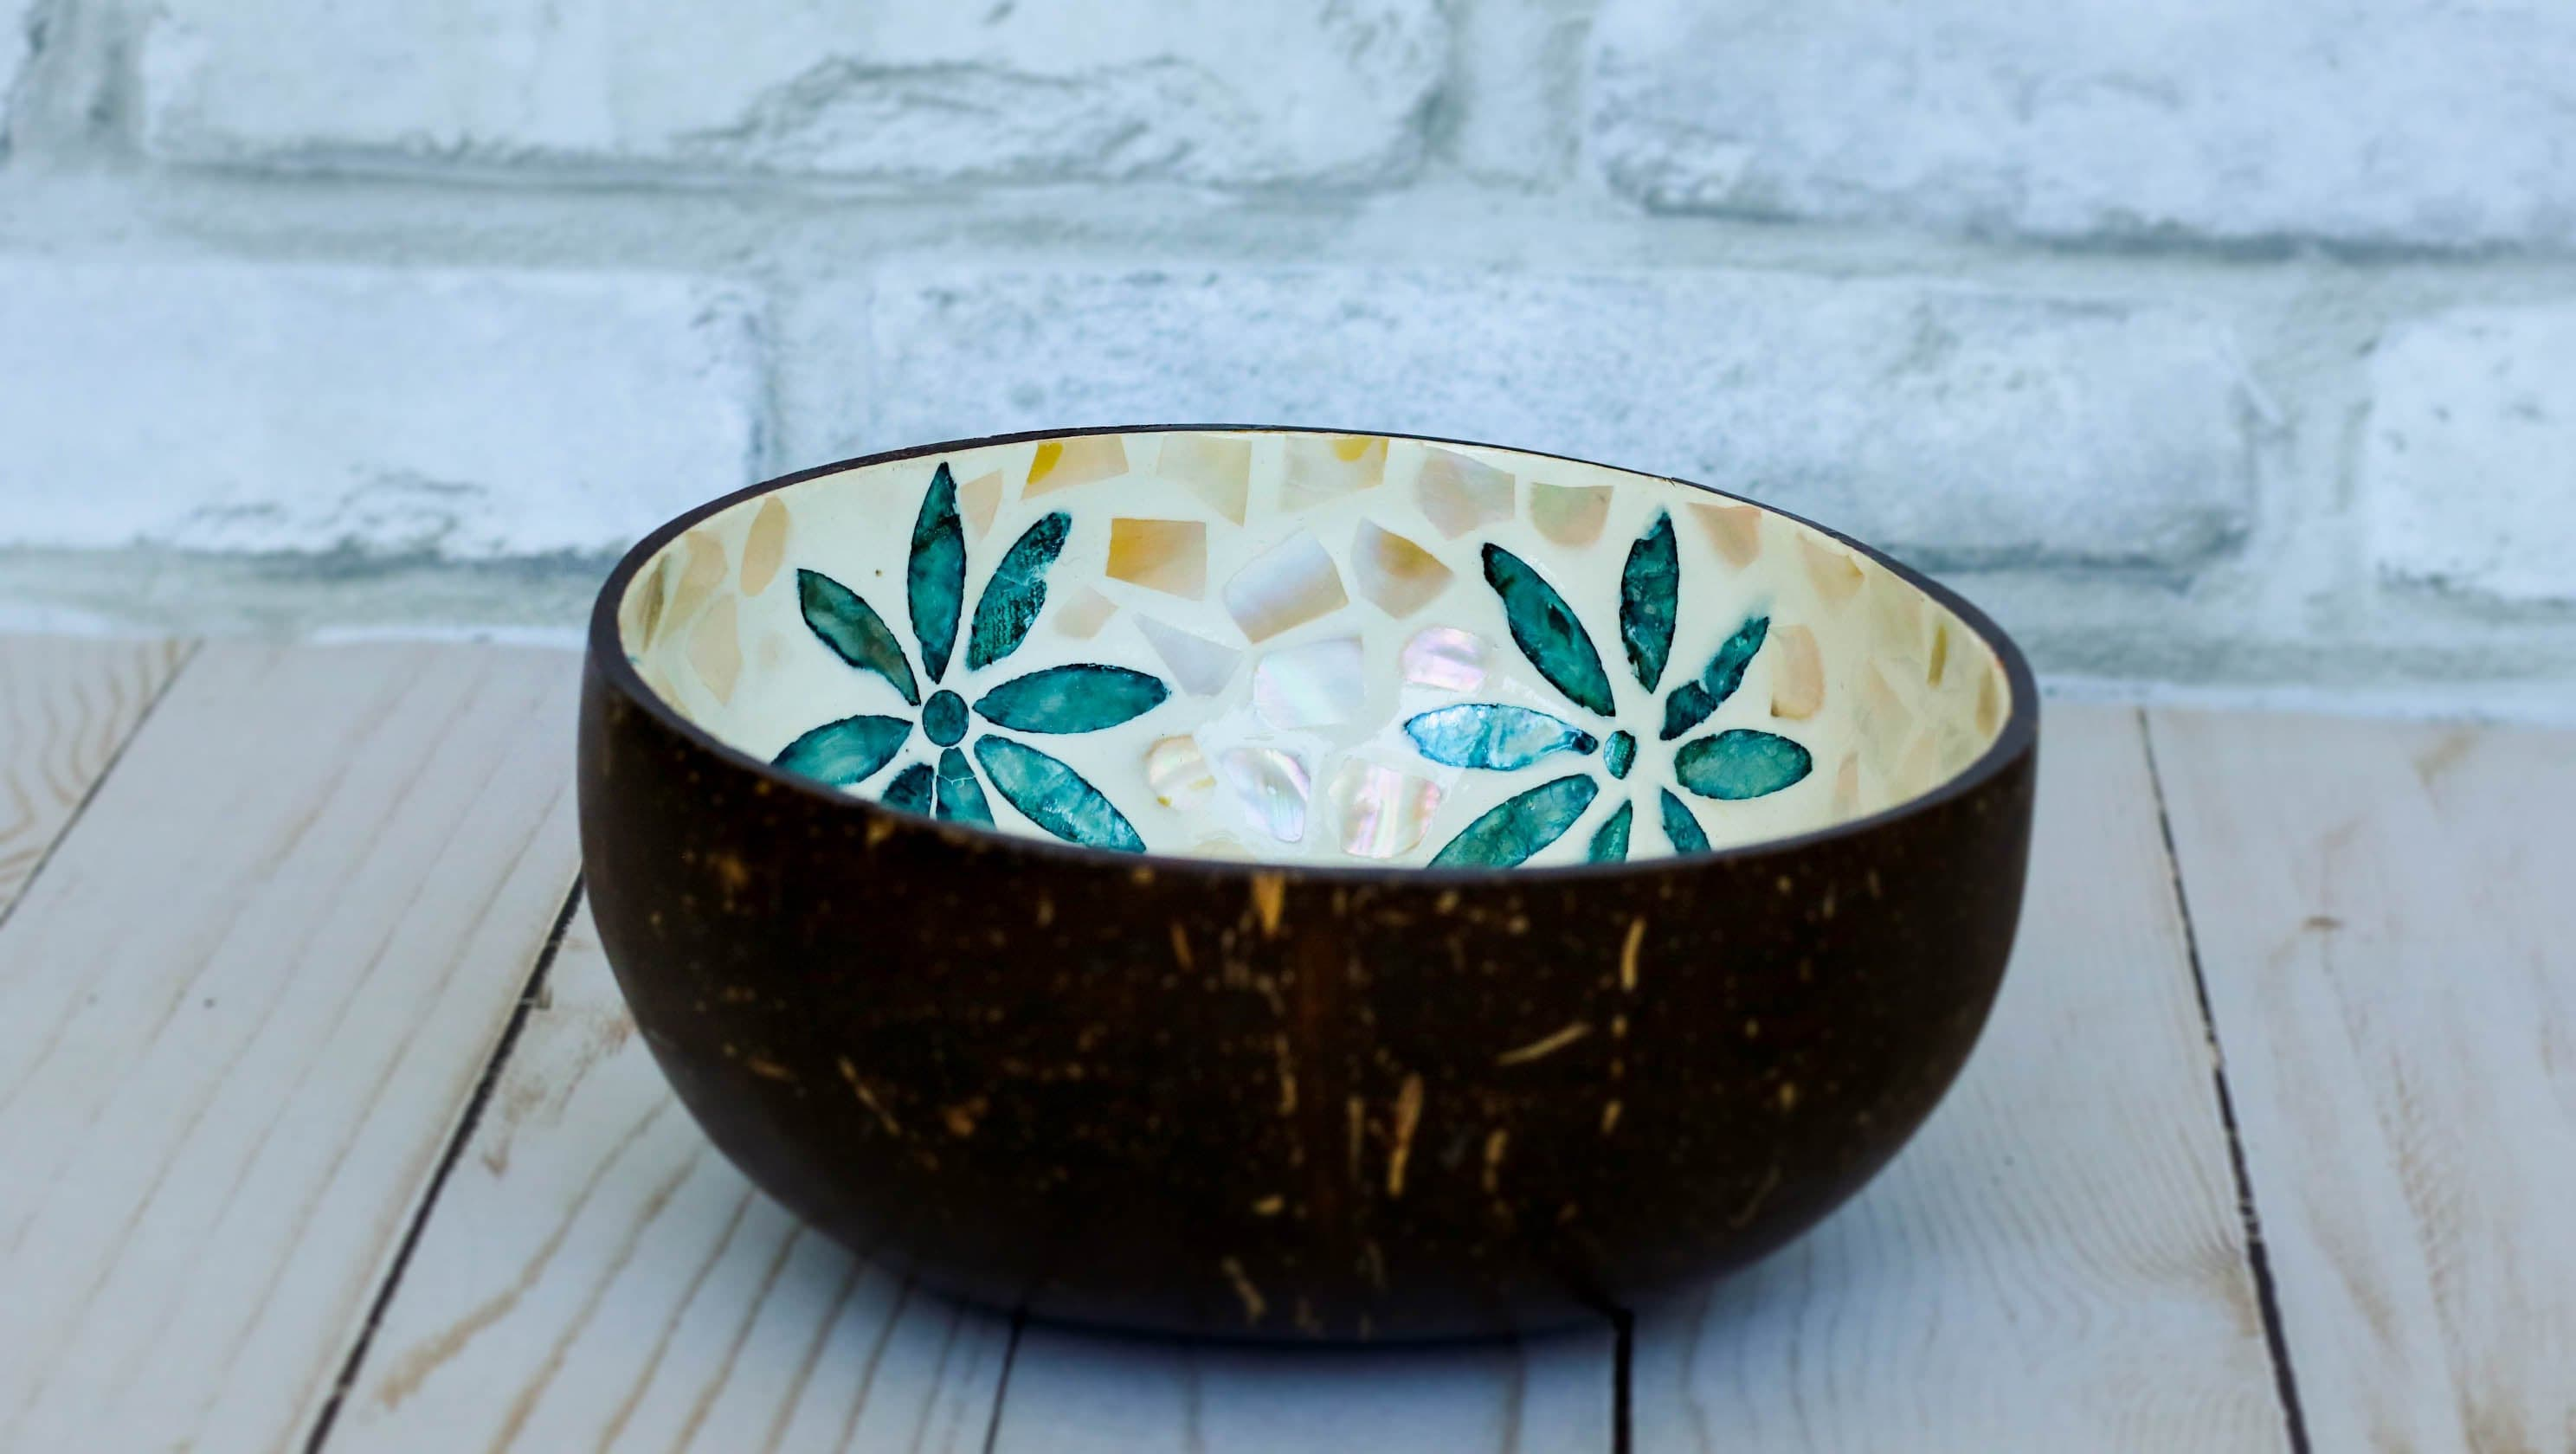 The Blue Wildflower | Coconut Bowl